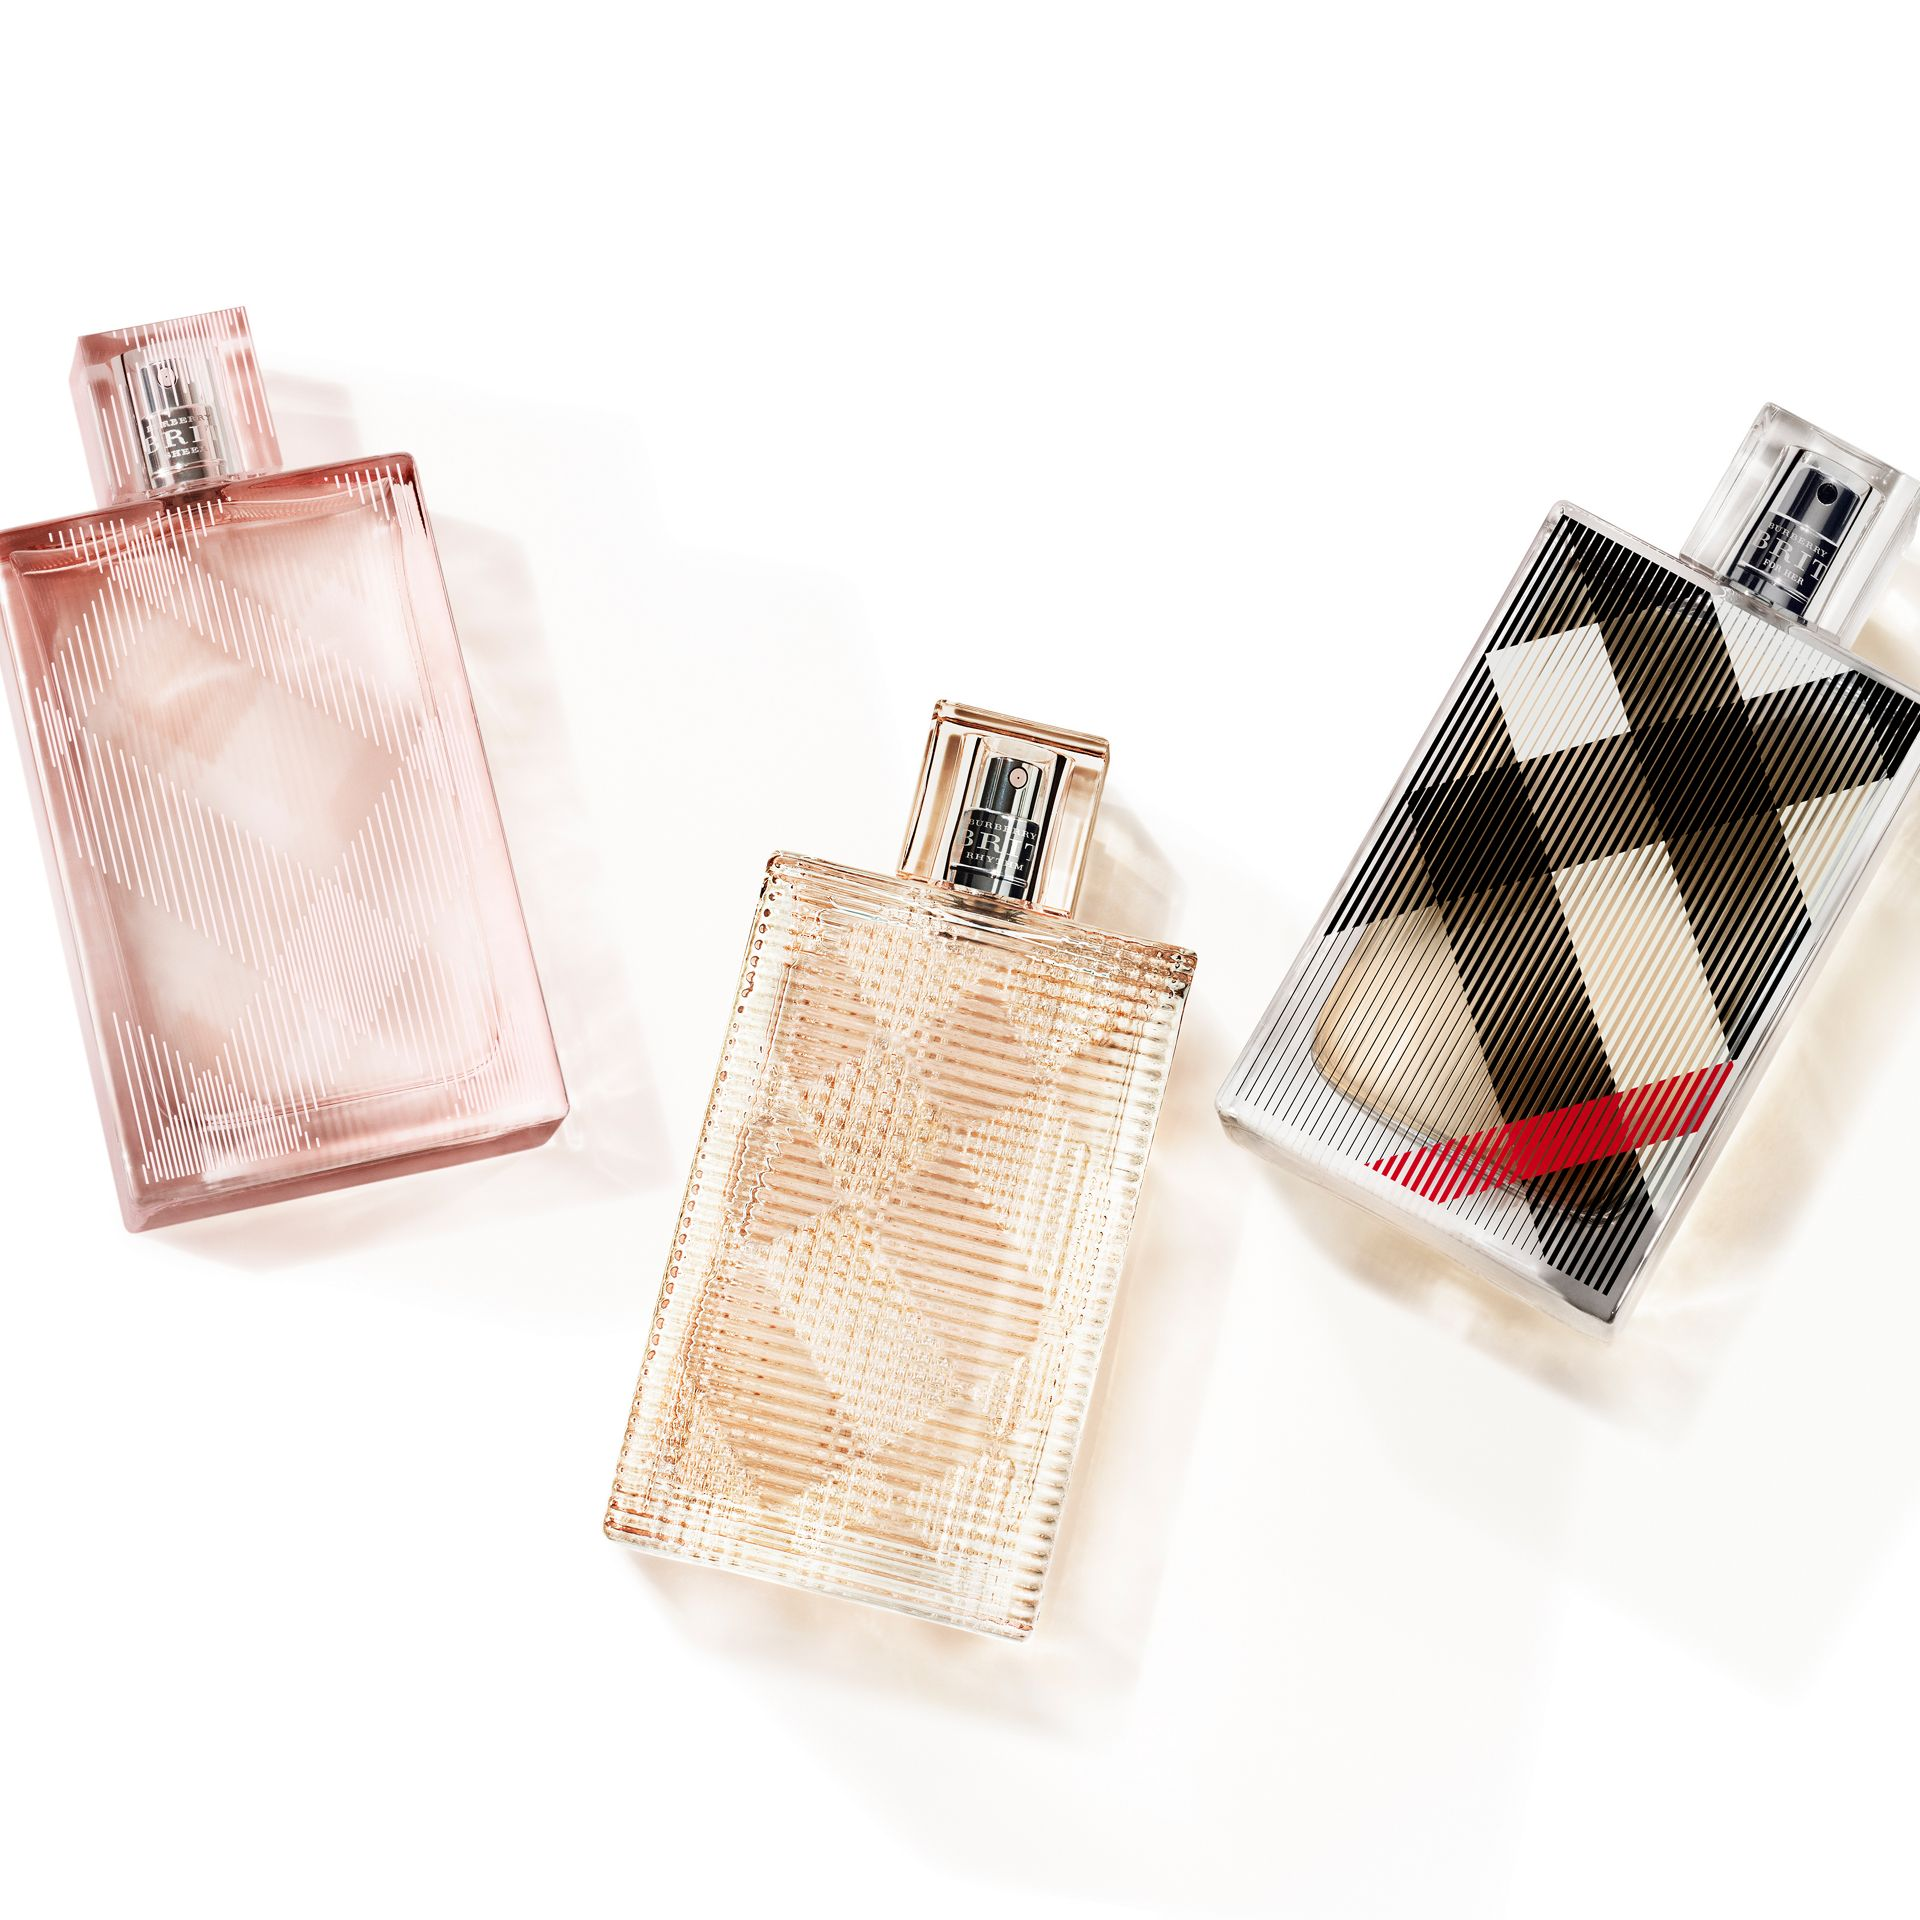 Eau de Toilette Burberry Brit for Her 50 ml - photo de la galerie 3